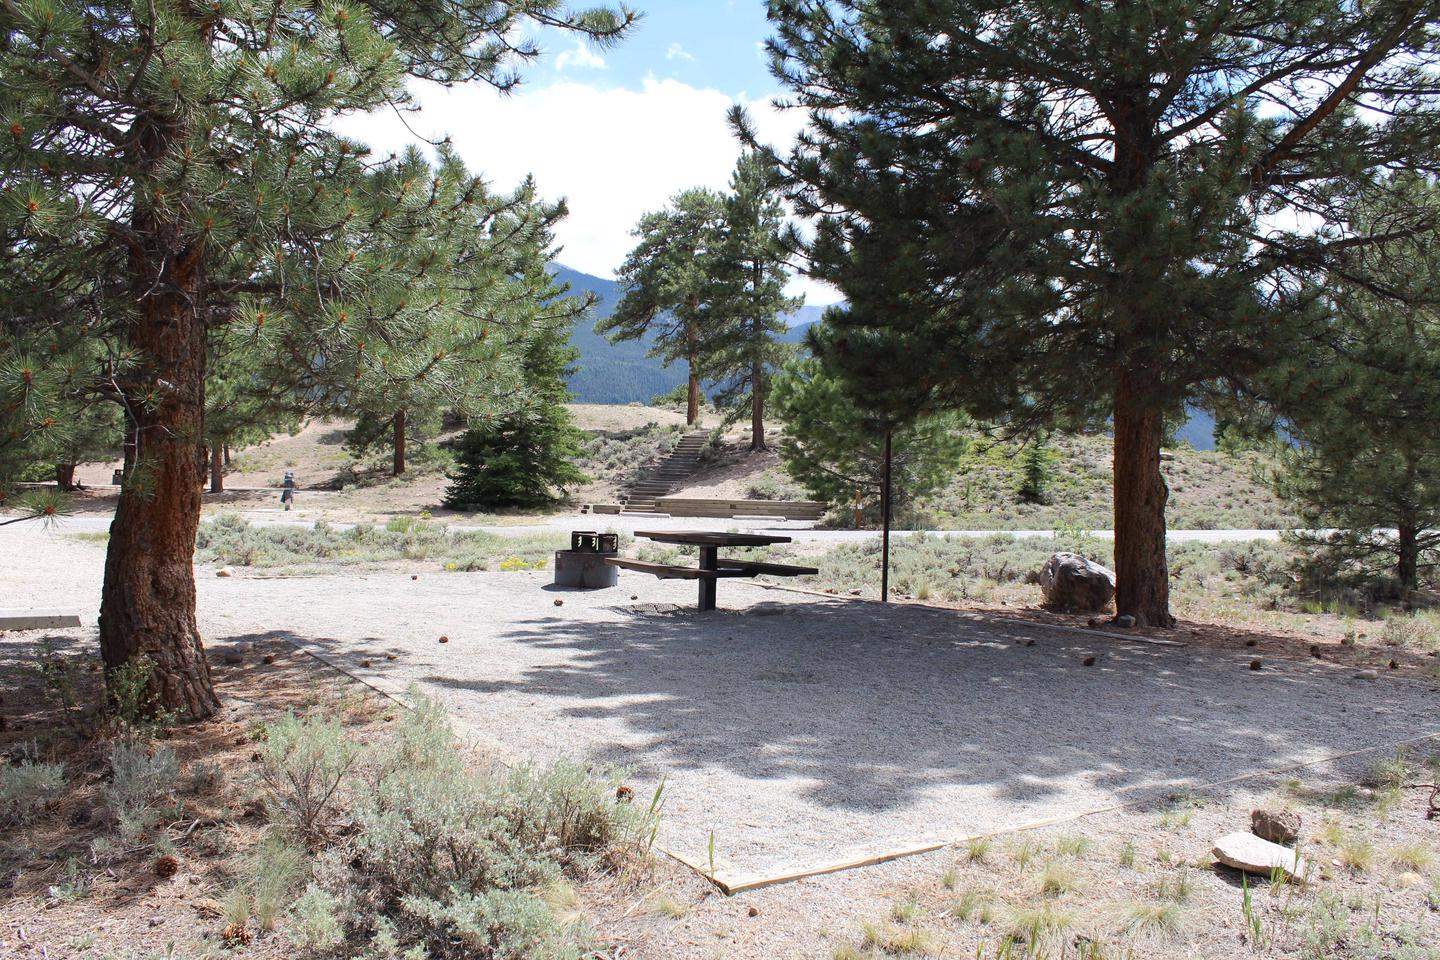 White Star Campground, site 13 picnic table and fire ring